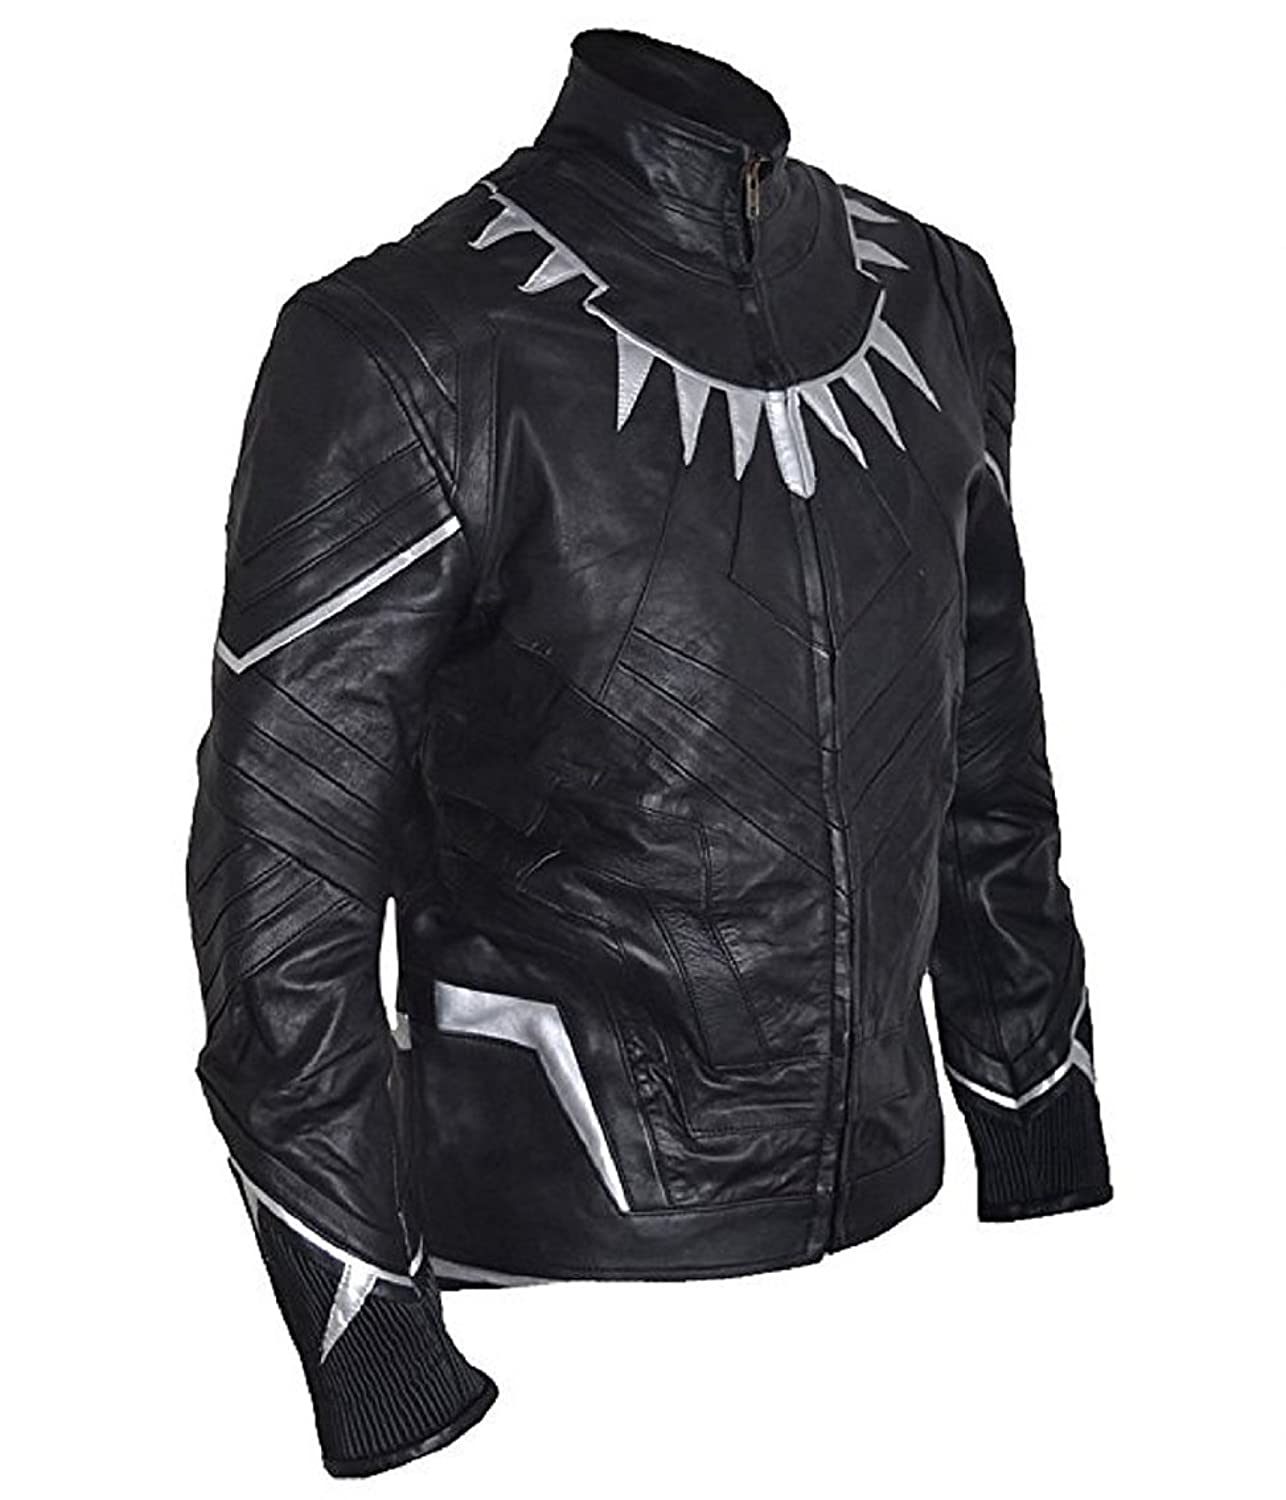 Captain America: Civil War Men's Black Panther Sheepskin Leather Jacket - DeluxeAdultCostumes.com